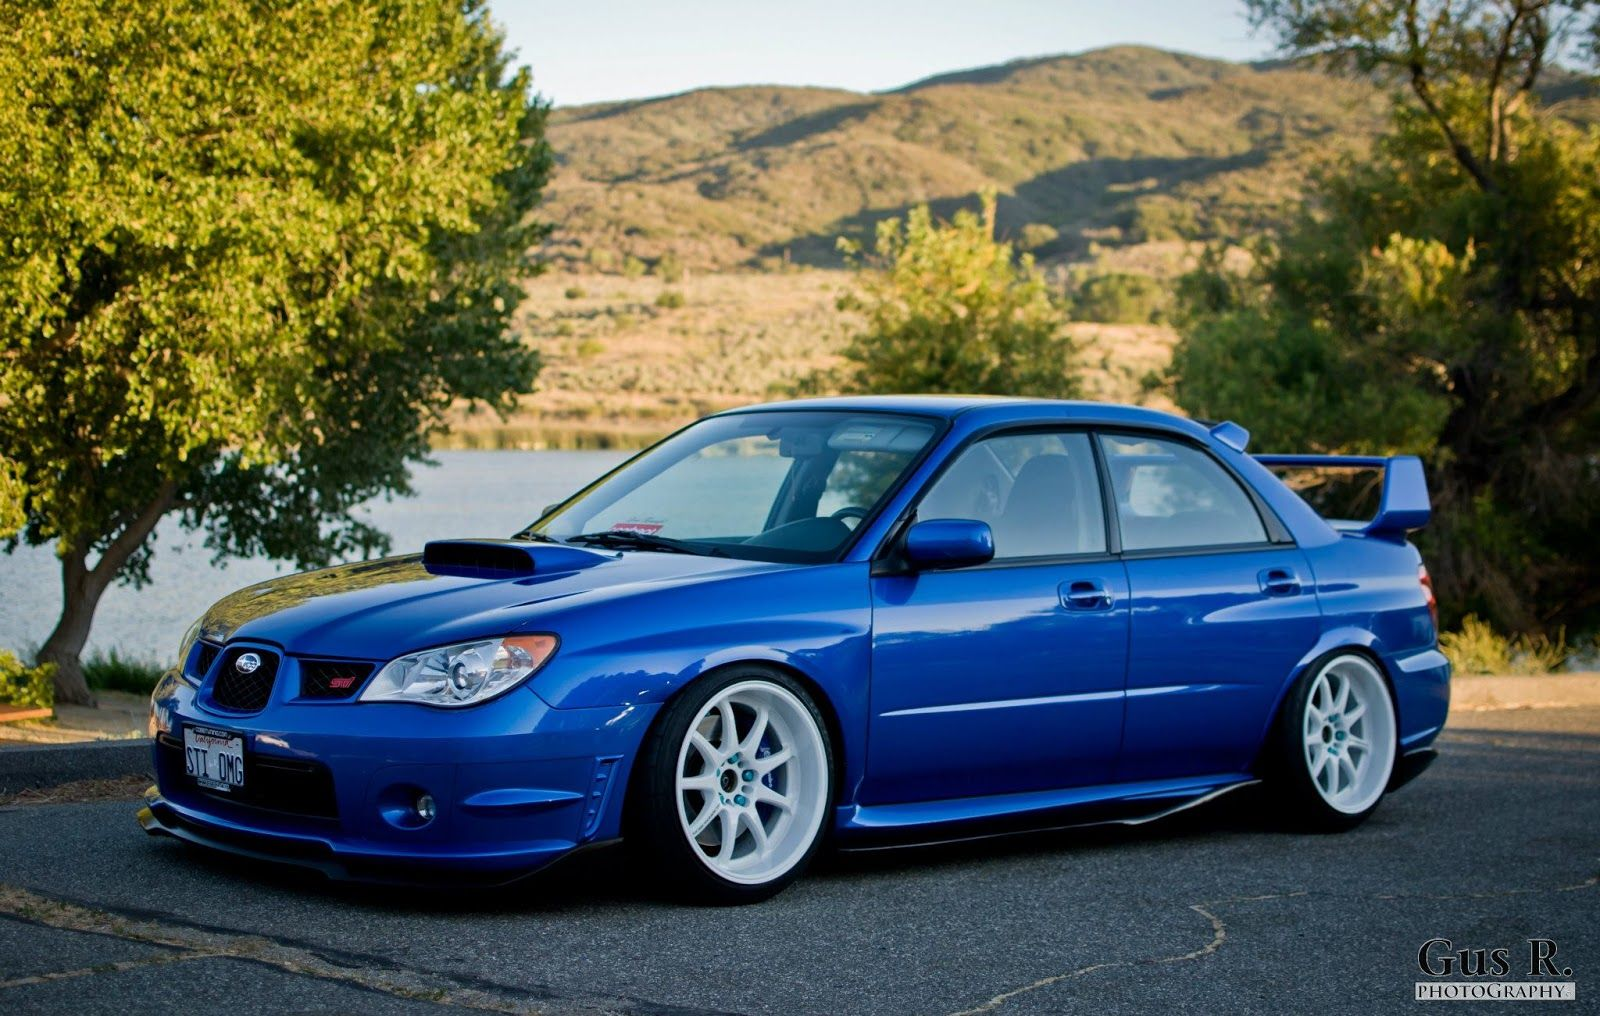 2007 Subaru Wrx Sti >> Subaru Wrx Sti 2007 Google Search My Garage Wrx